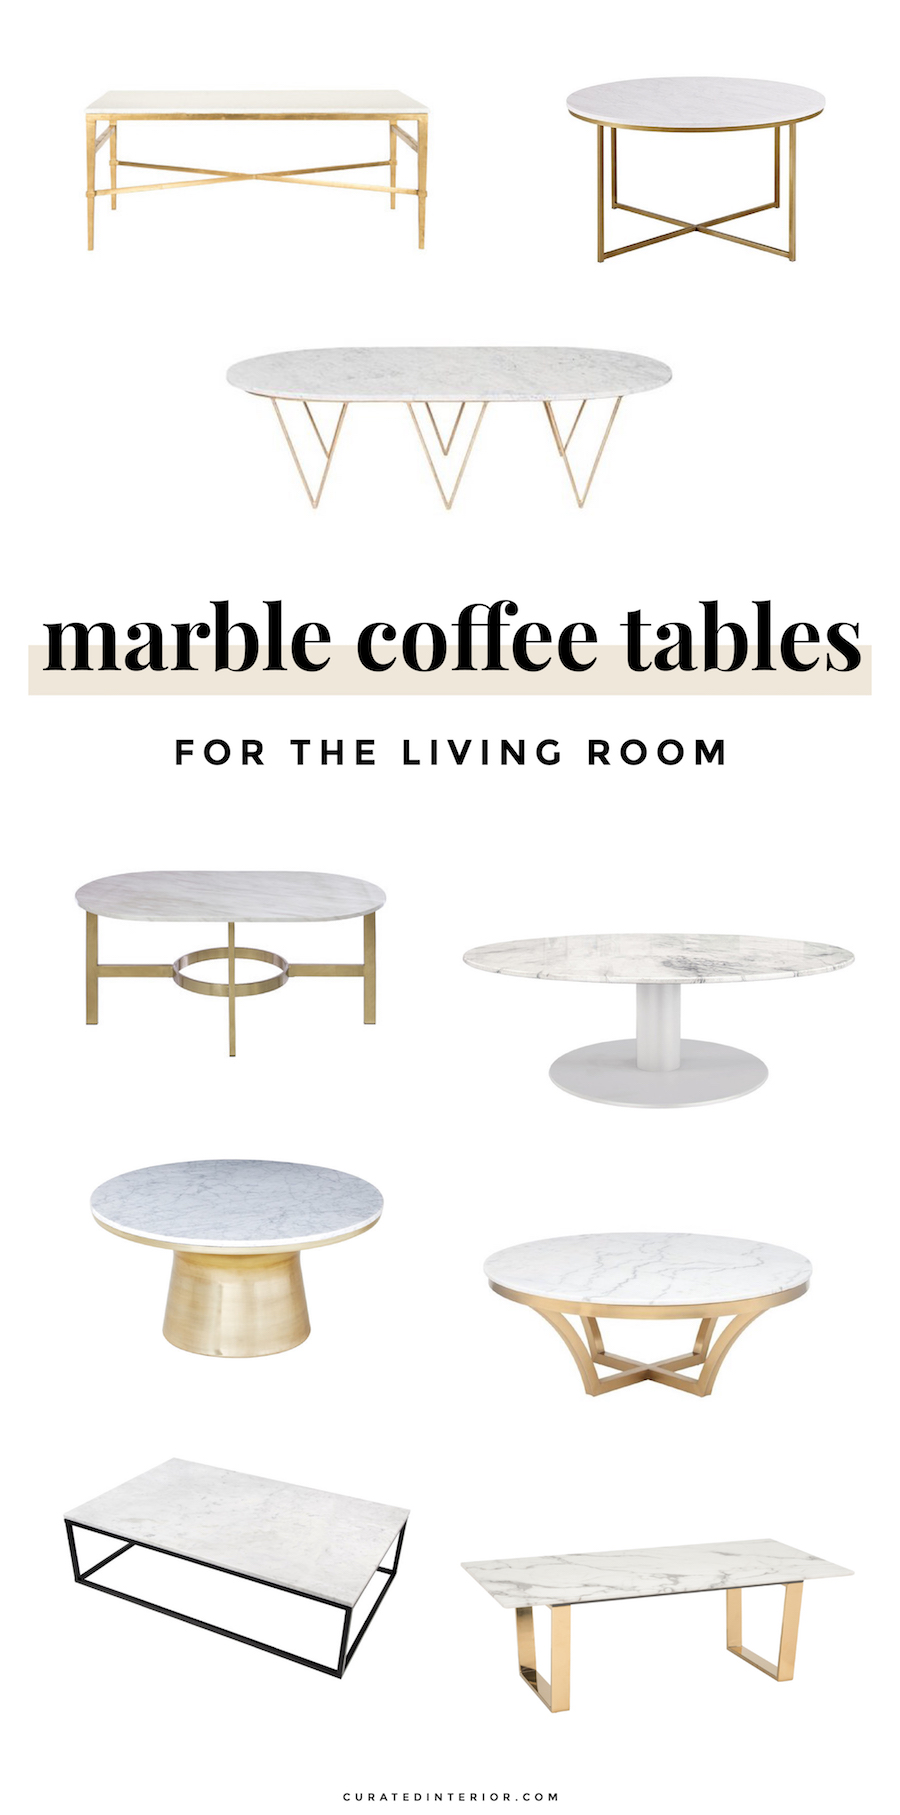 Shop White Marble Coffee Tables For the Home